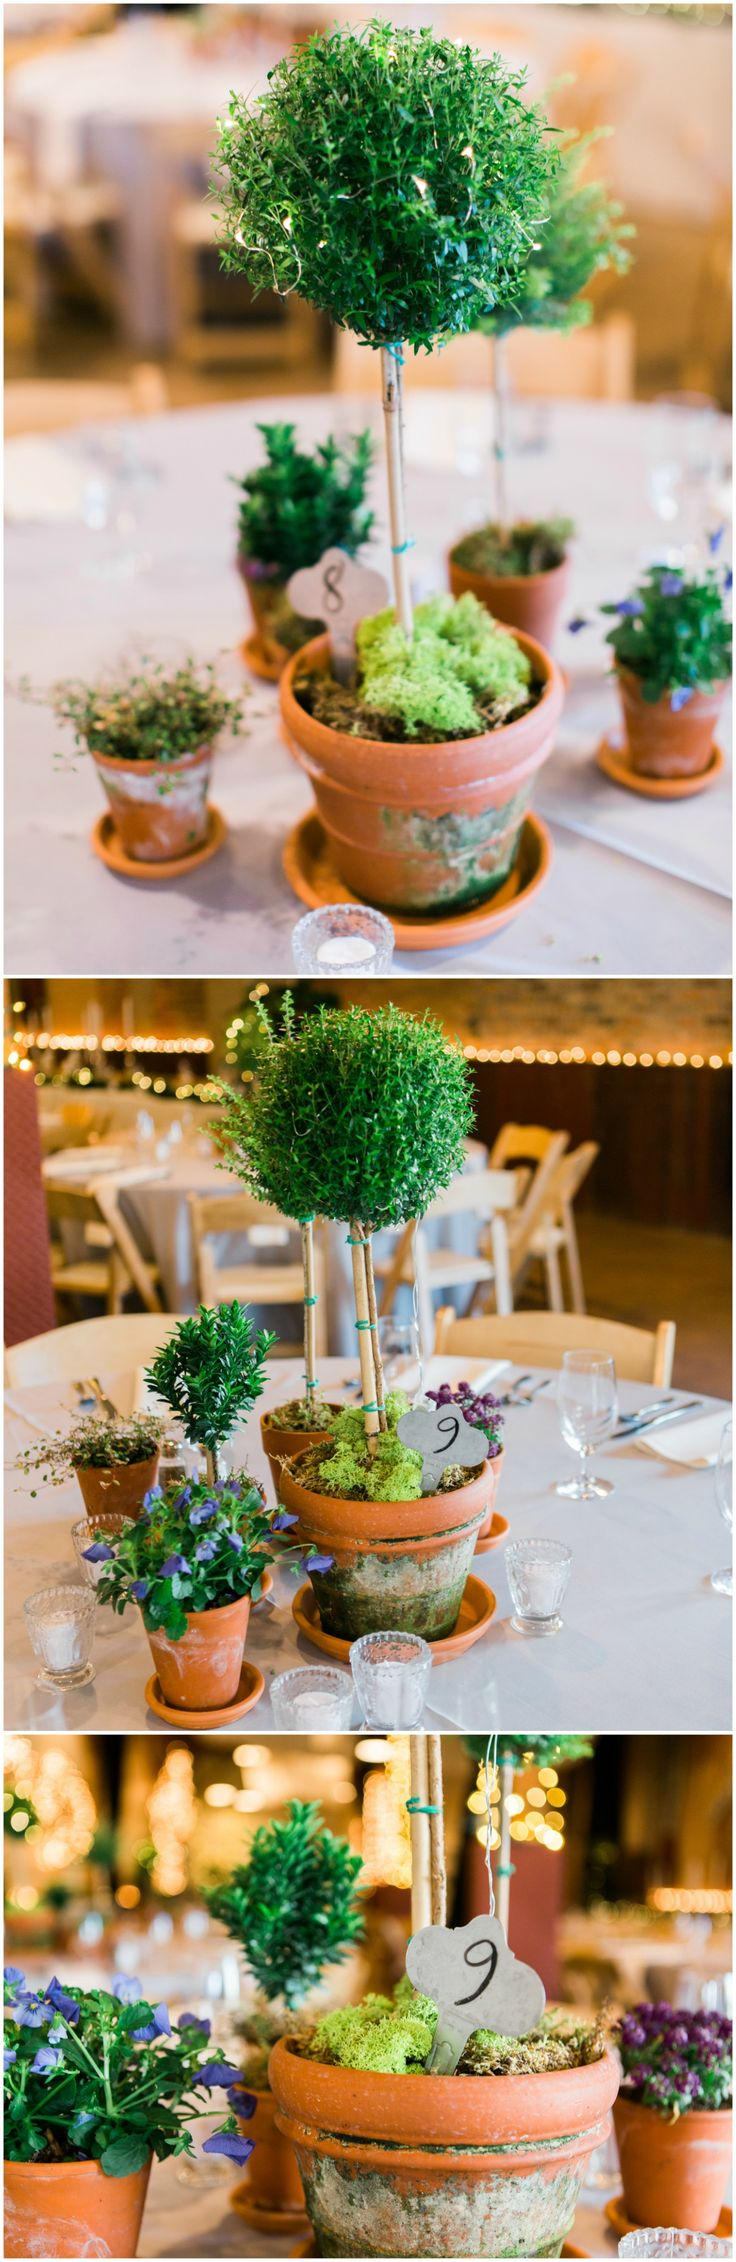 Mini potted topiaries, wedding reception centerpiece ideas, natural decor, handwritten table numbers, white candles // Rachel Osborn Photography